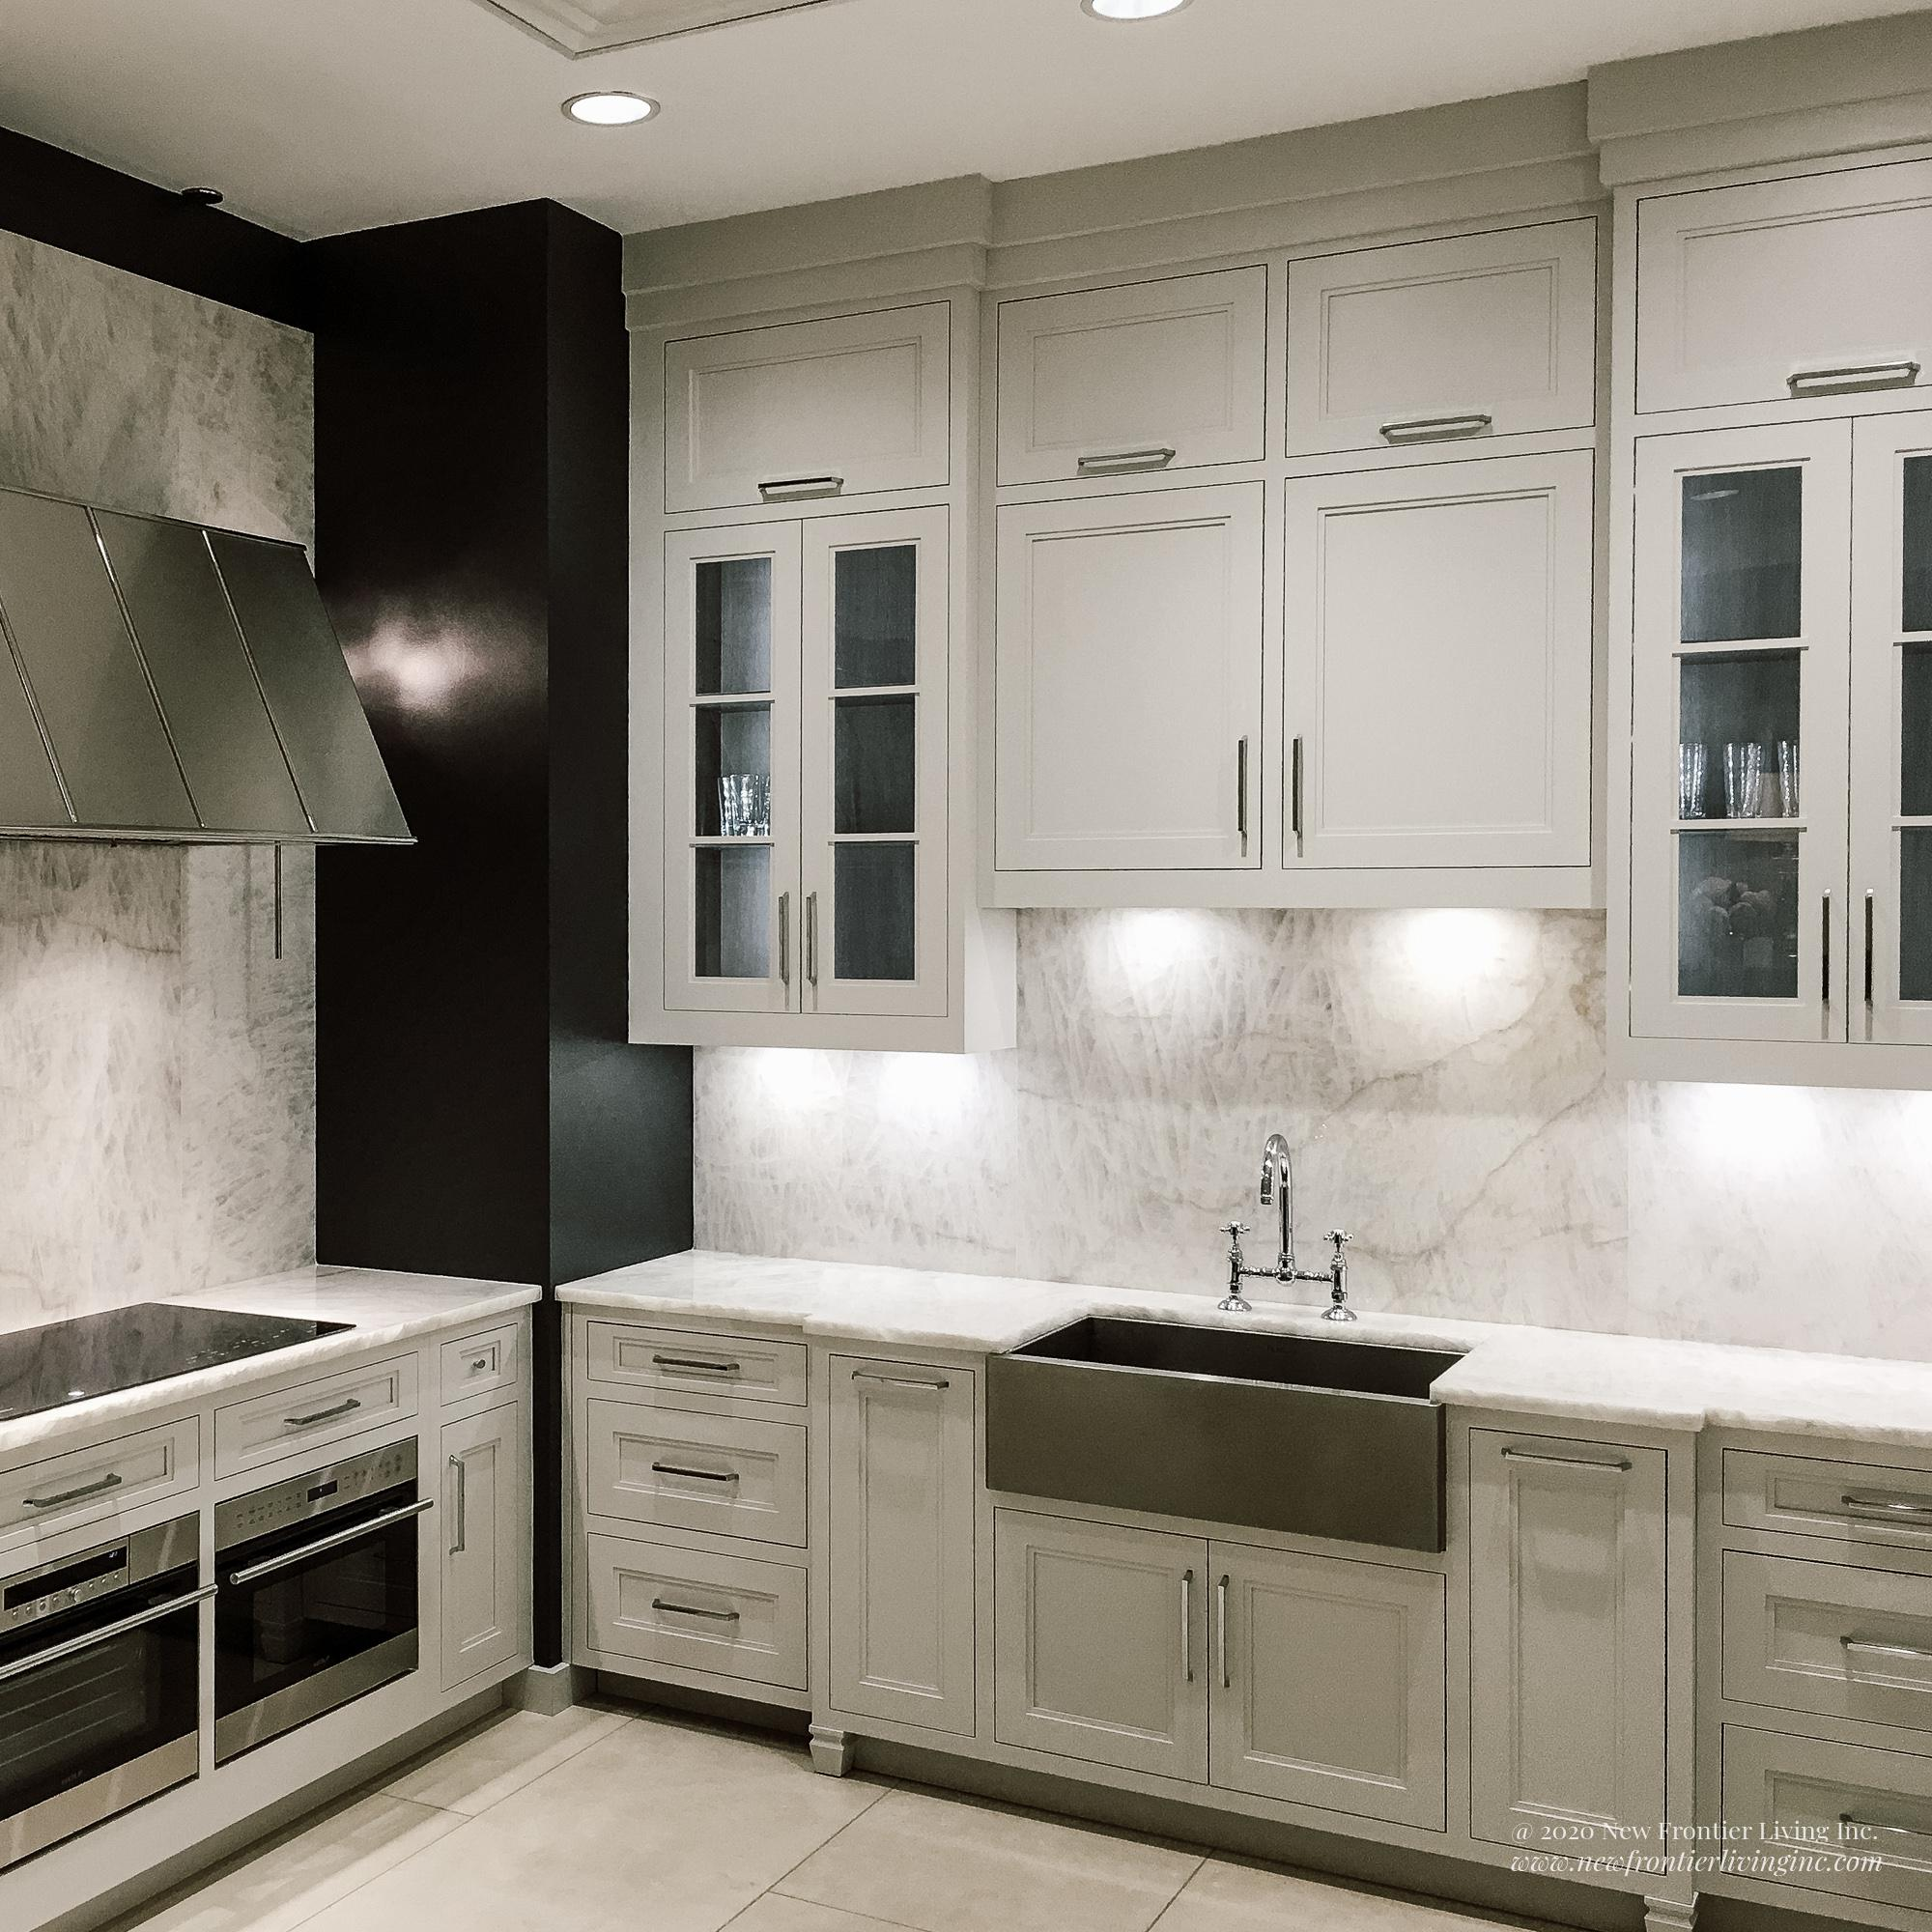 C-shaped traditional cream kitchen with upper glass cabinetry and cream floor